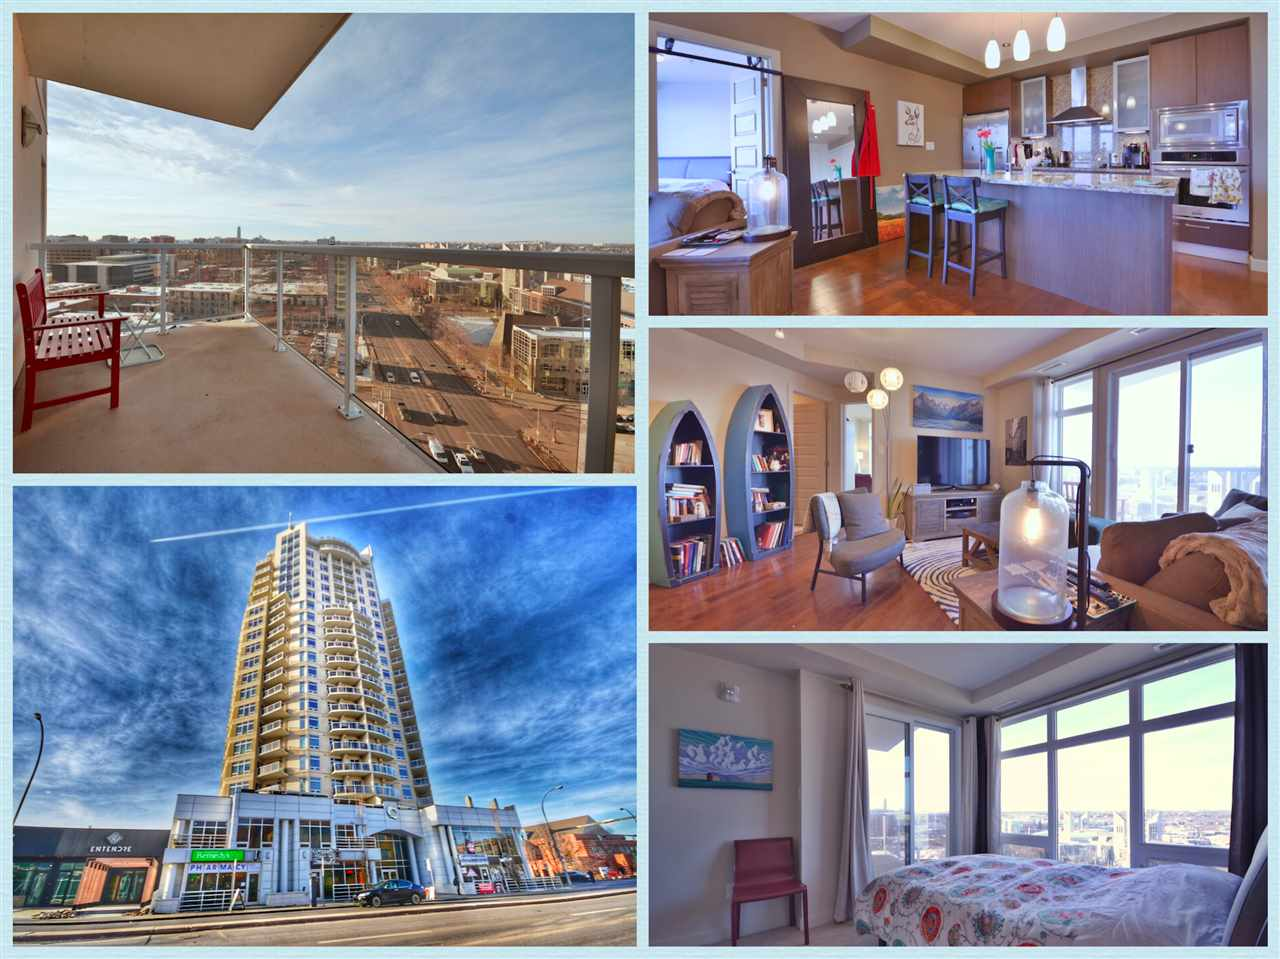 Main Photo: 1407 10388 105 Street in Edmonton: Zone 12 Condo for sale : MLS® # E4090468